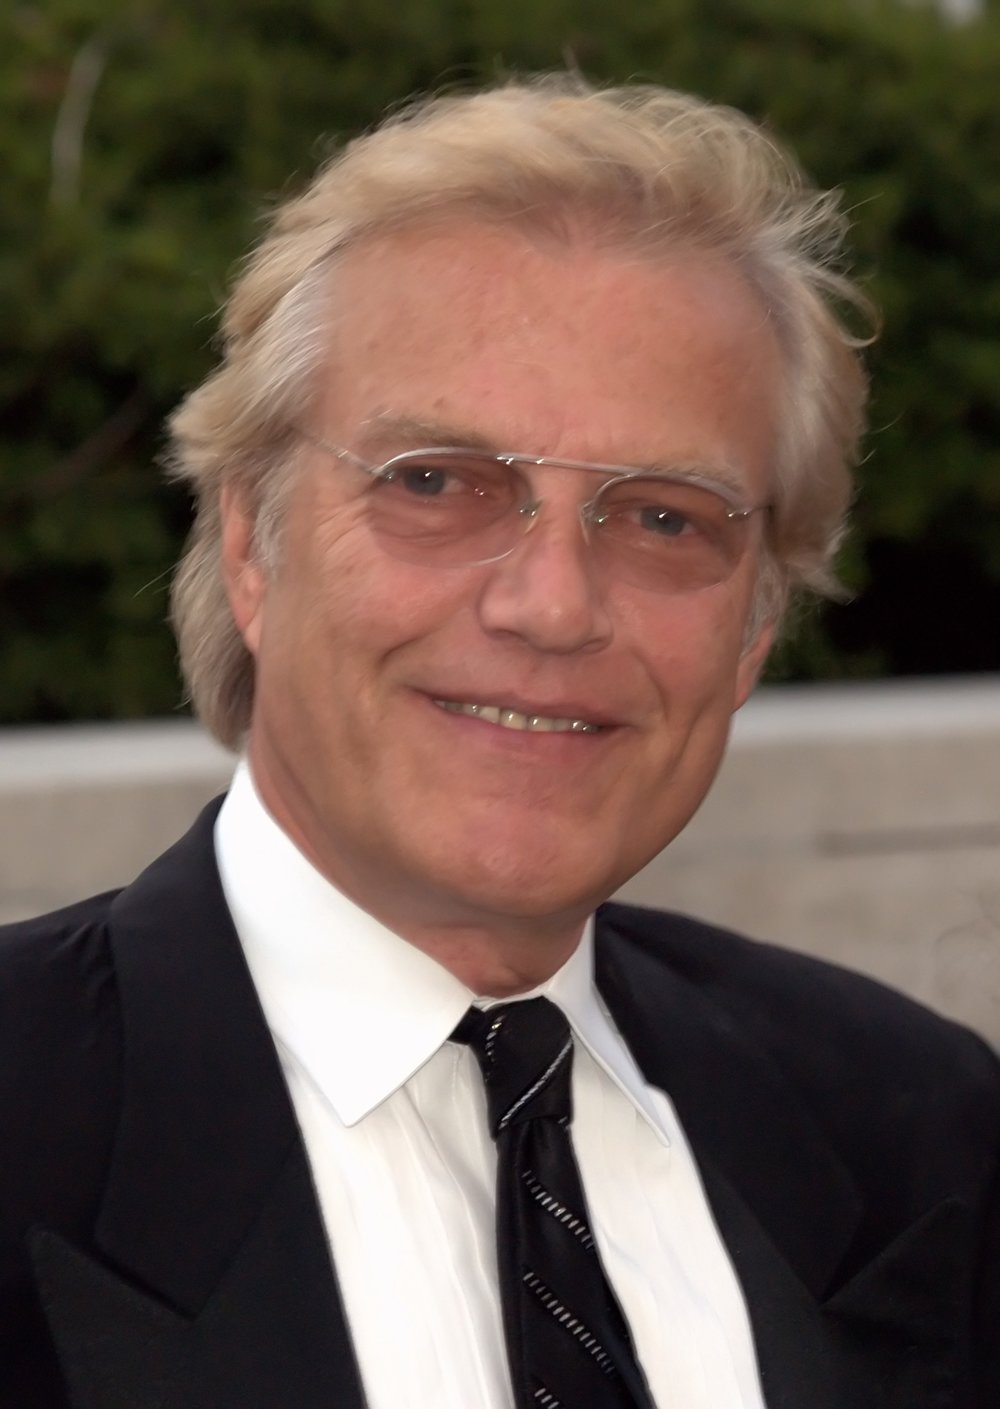 Peter Martins at a Metropolitan Opera premiere in 2009. Photograph by David Shankbone.